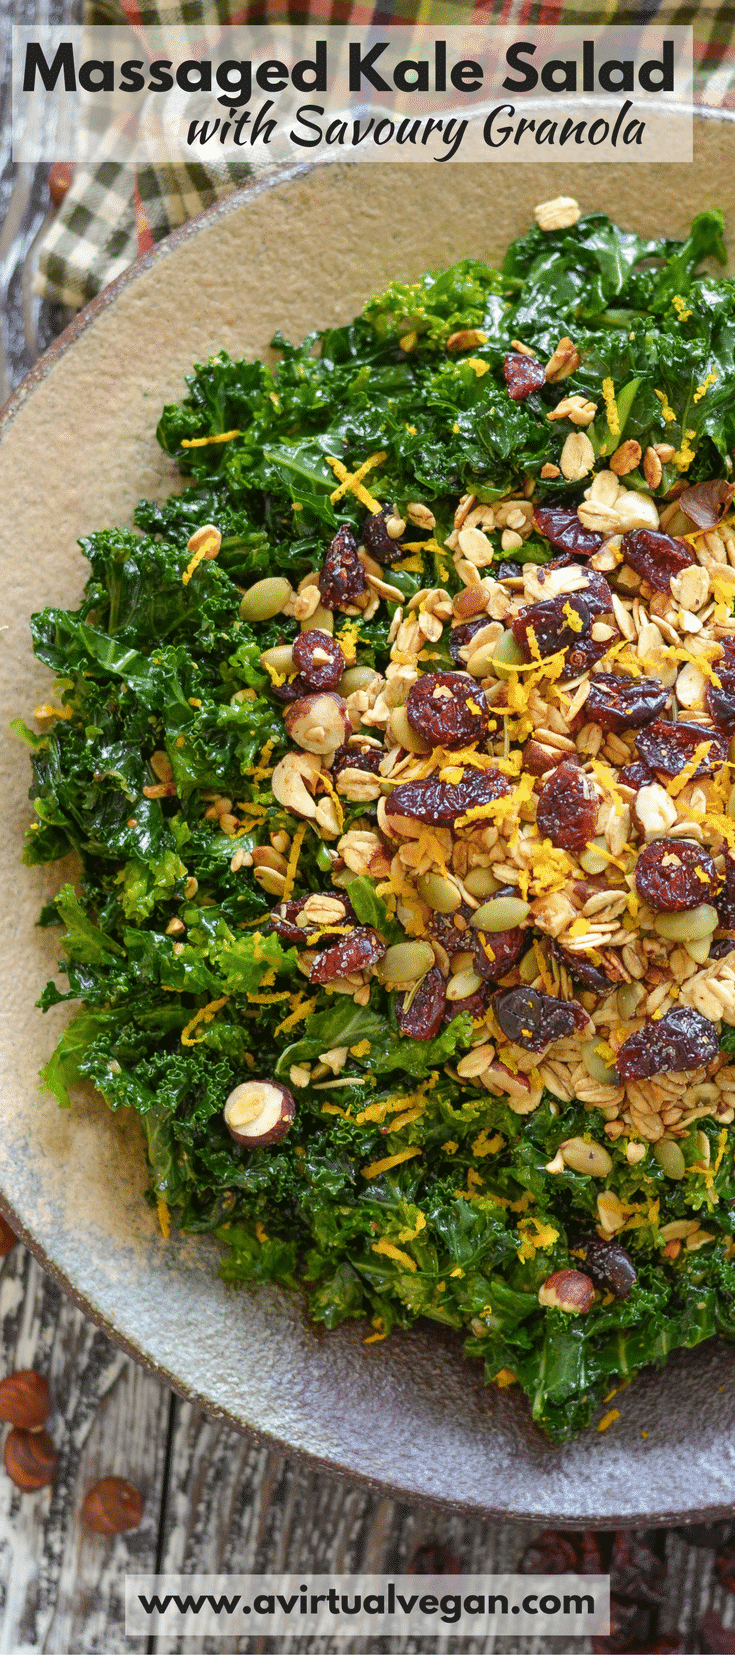 This healthy Massaged Kale Salad is dressed in a deliciously tangy orange vinaigrette then scattered generously with rosemary infused savoury granola.